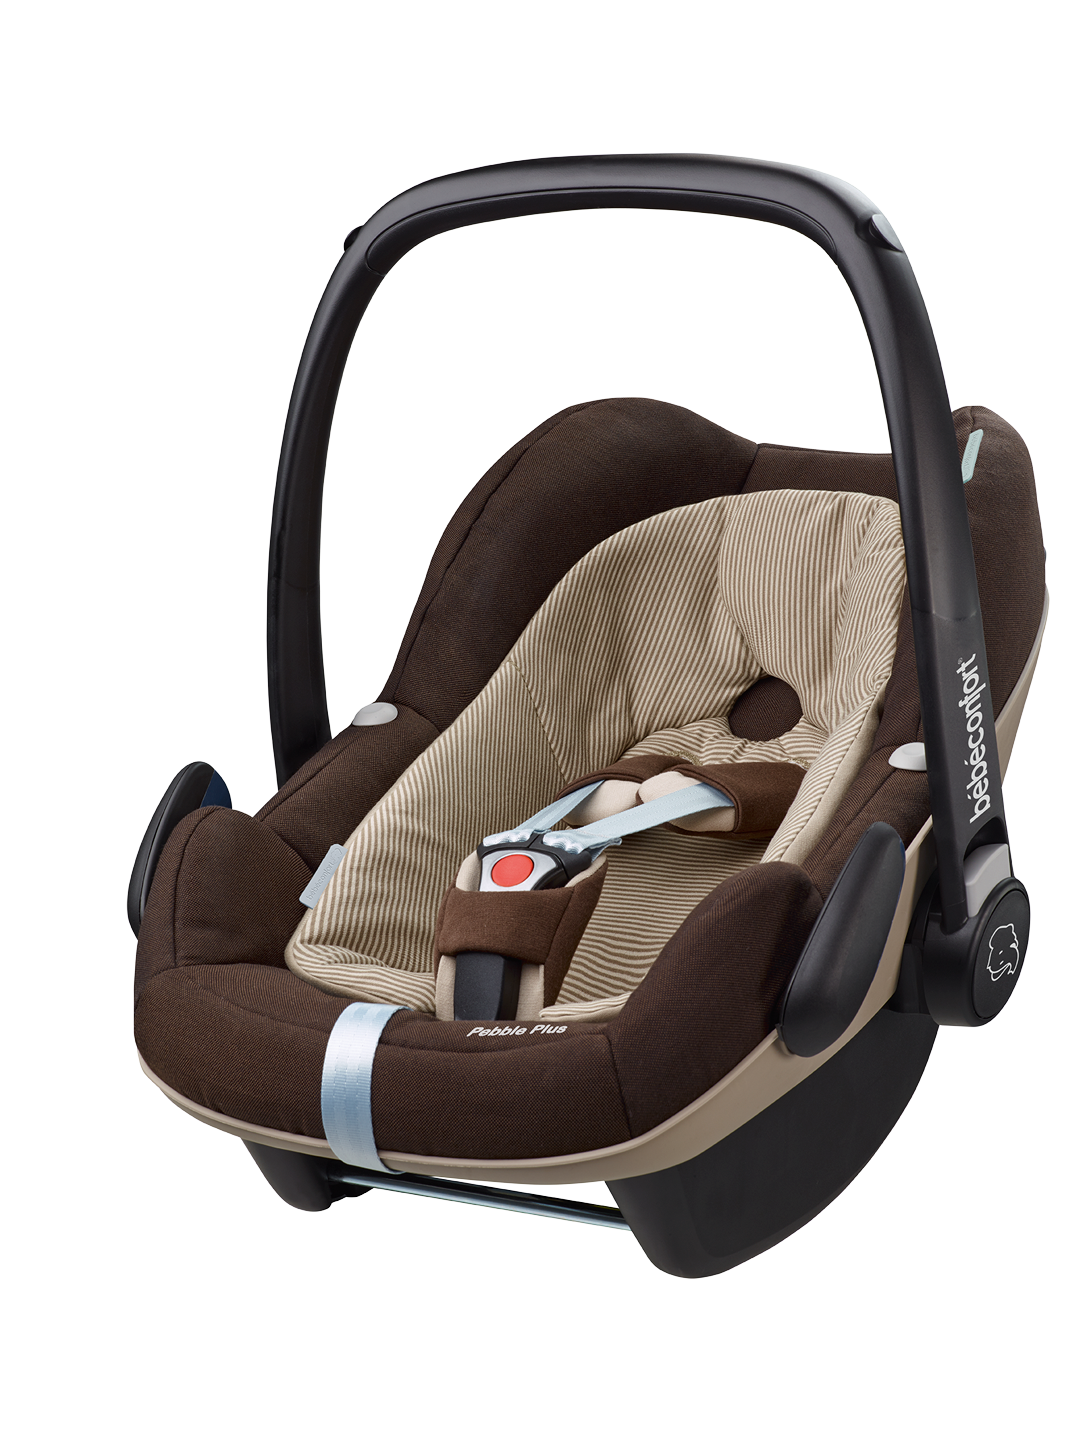 Seggiolino Auto i-Size Bébé Confort Pebble Plus Earth Brown